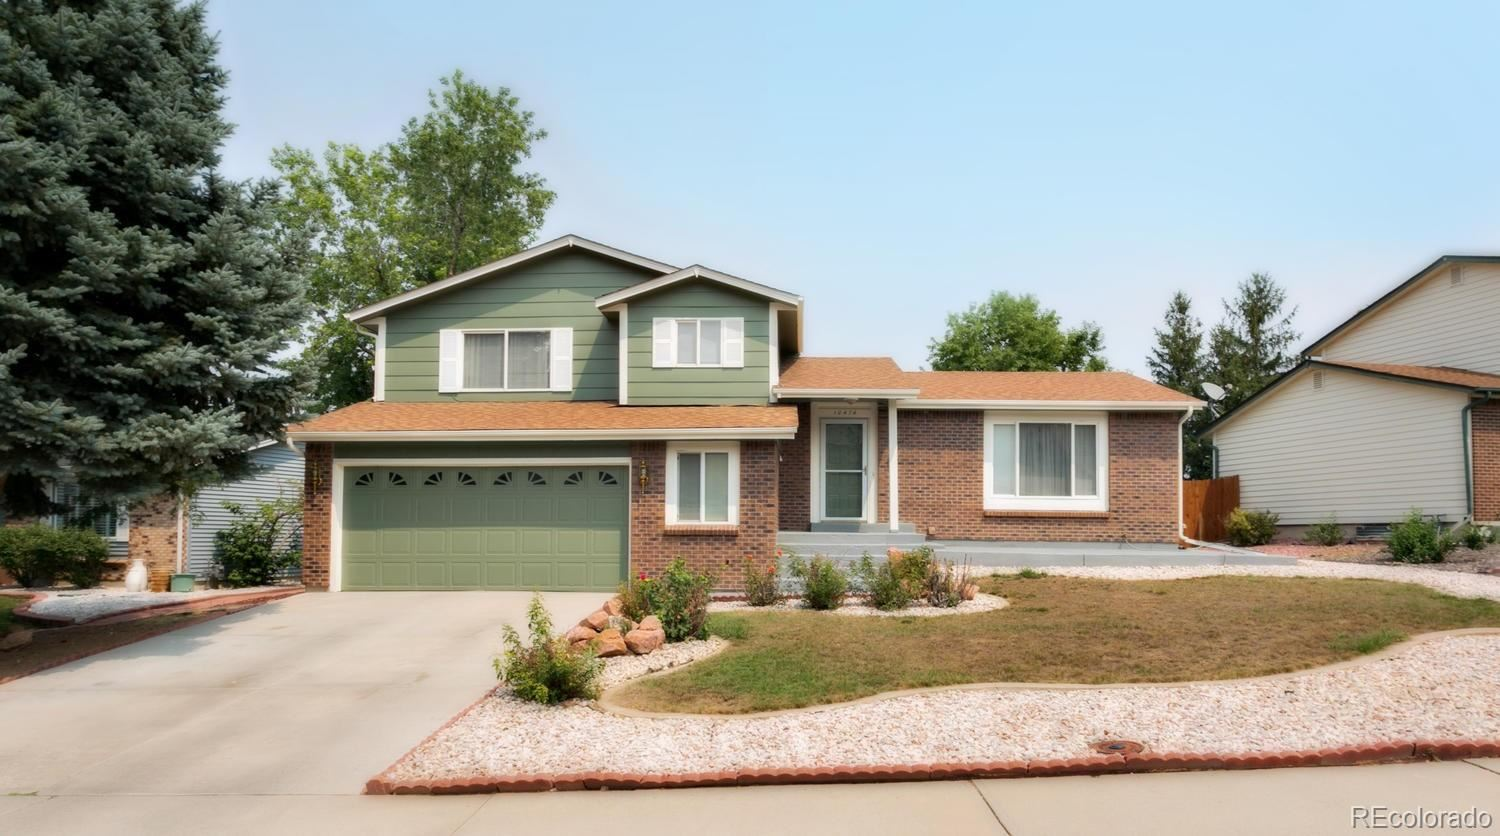 10474 Canosa Way, Westminster, CO 80234 - #: 4799879